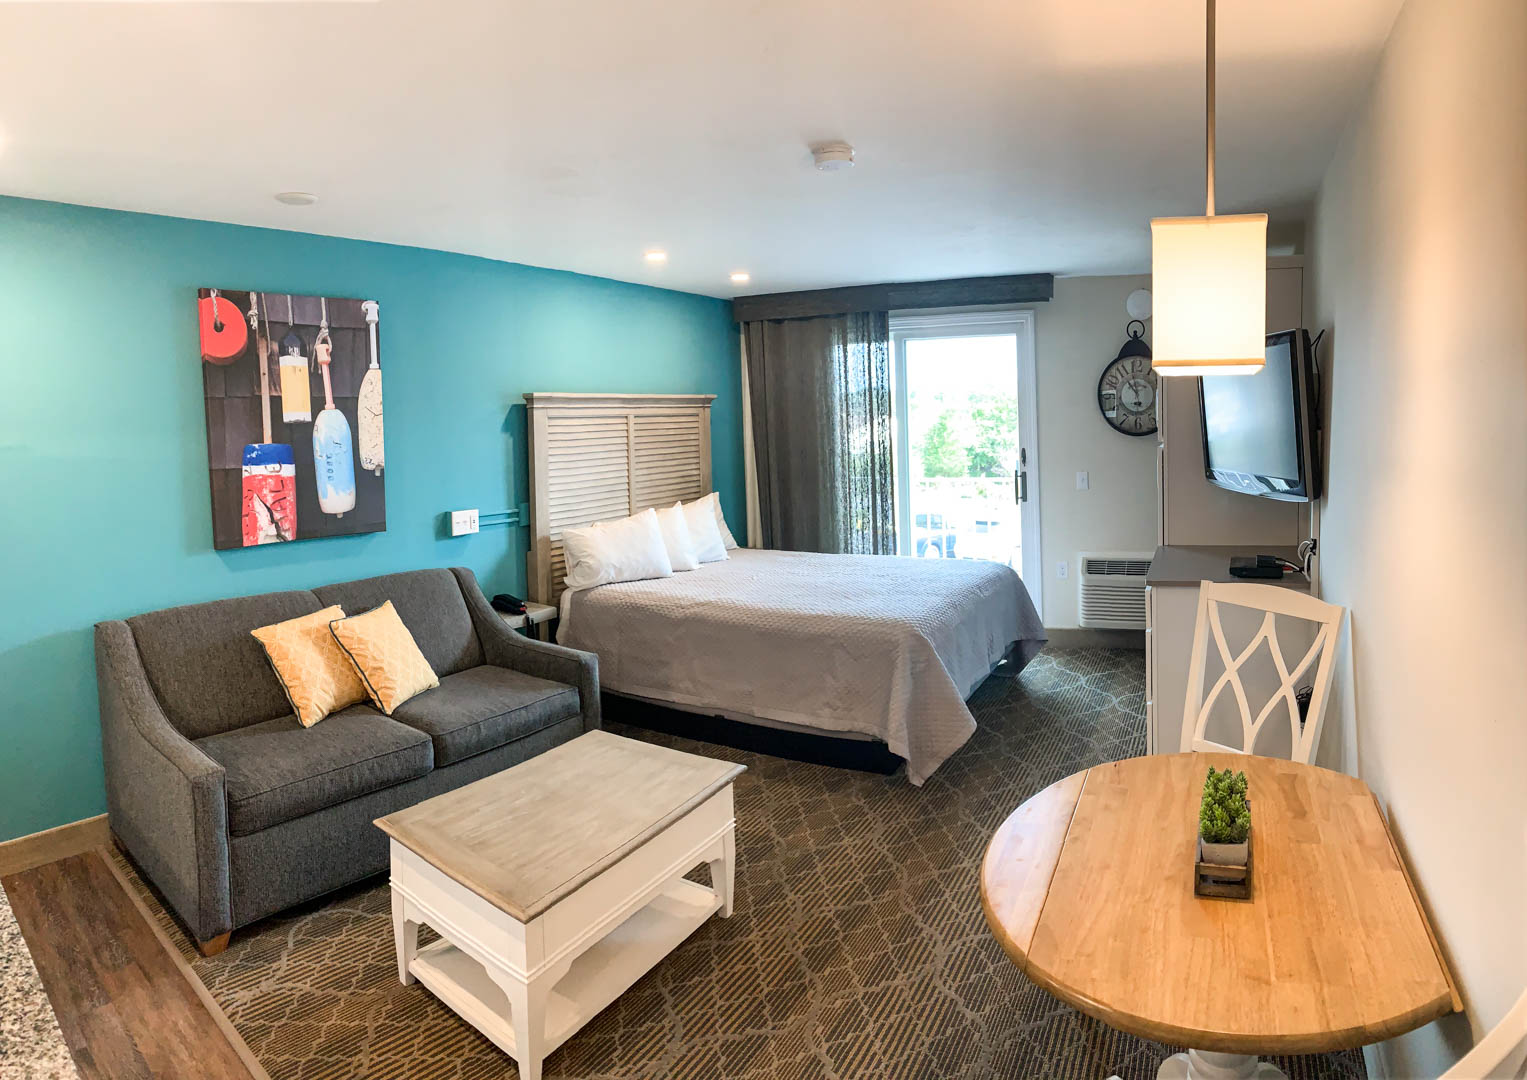 A modern one bedroom unit at VRI's Riverview Resort in Massachusetts.